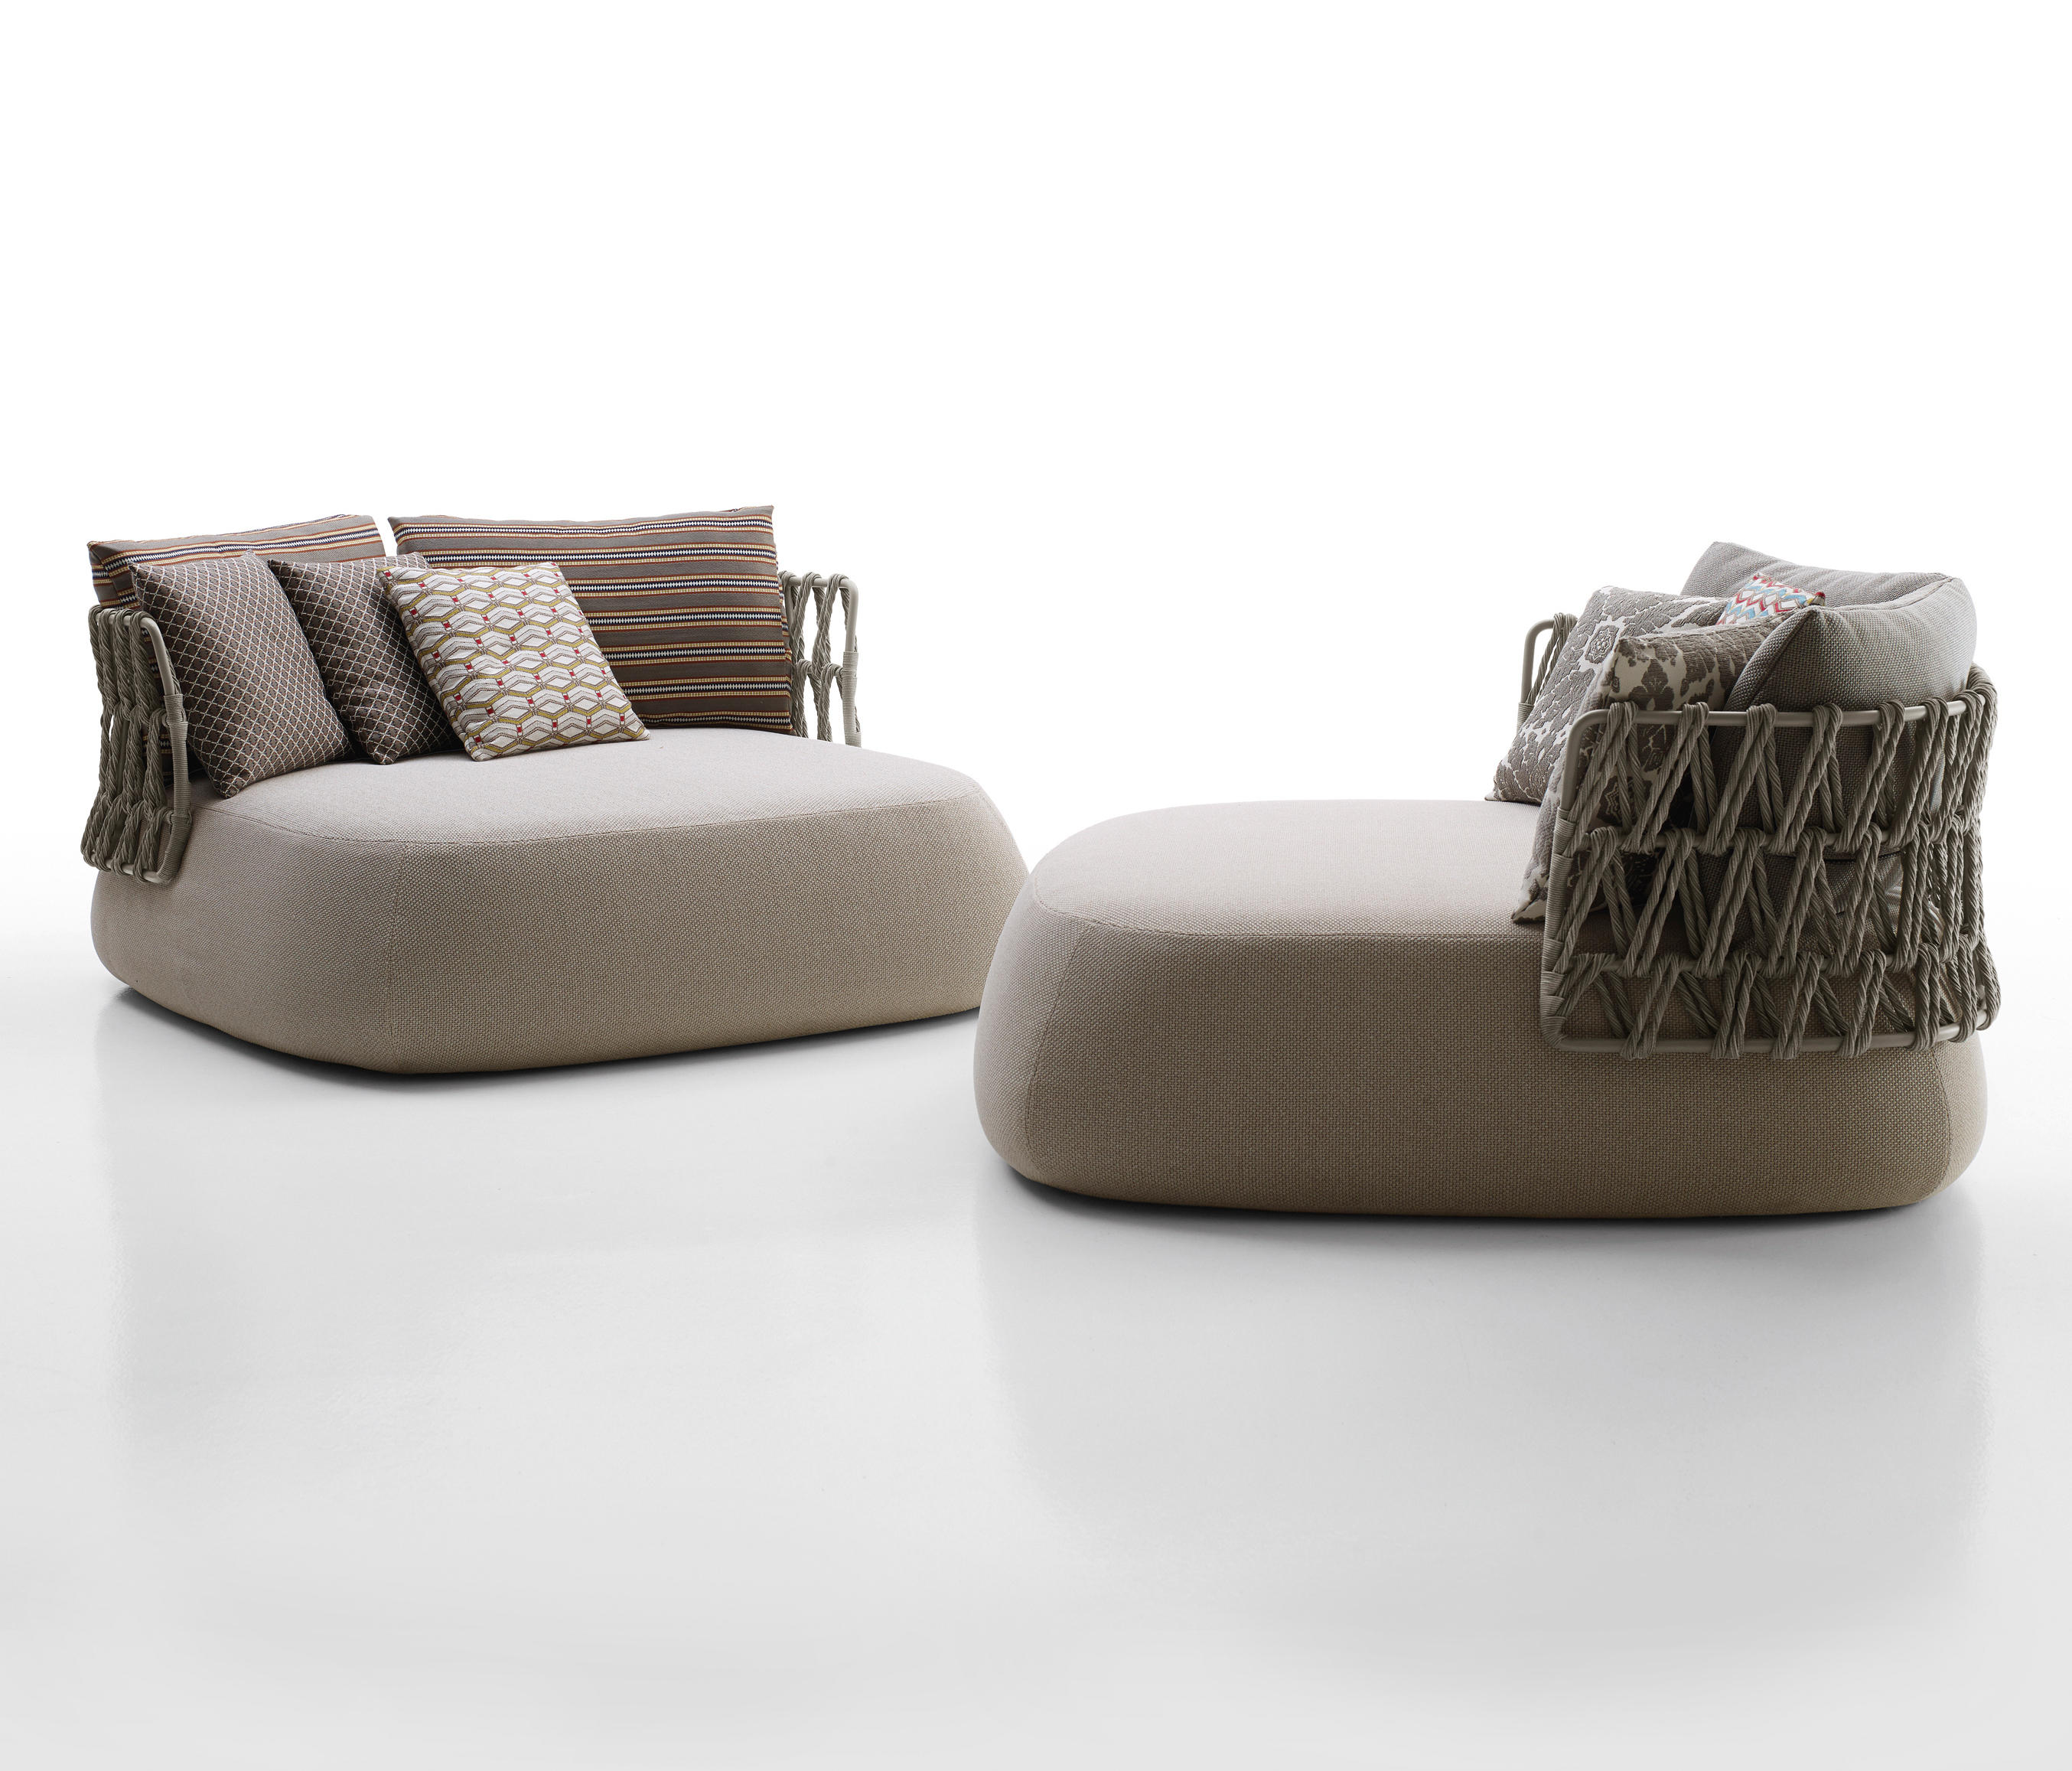 Fat sofa outdoor sofas from b b italia architonic for B b couch